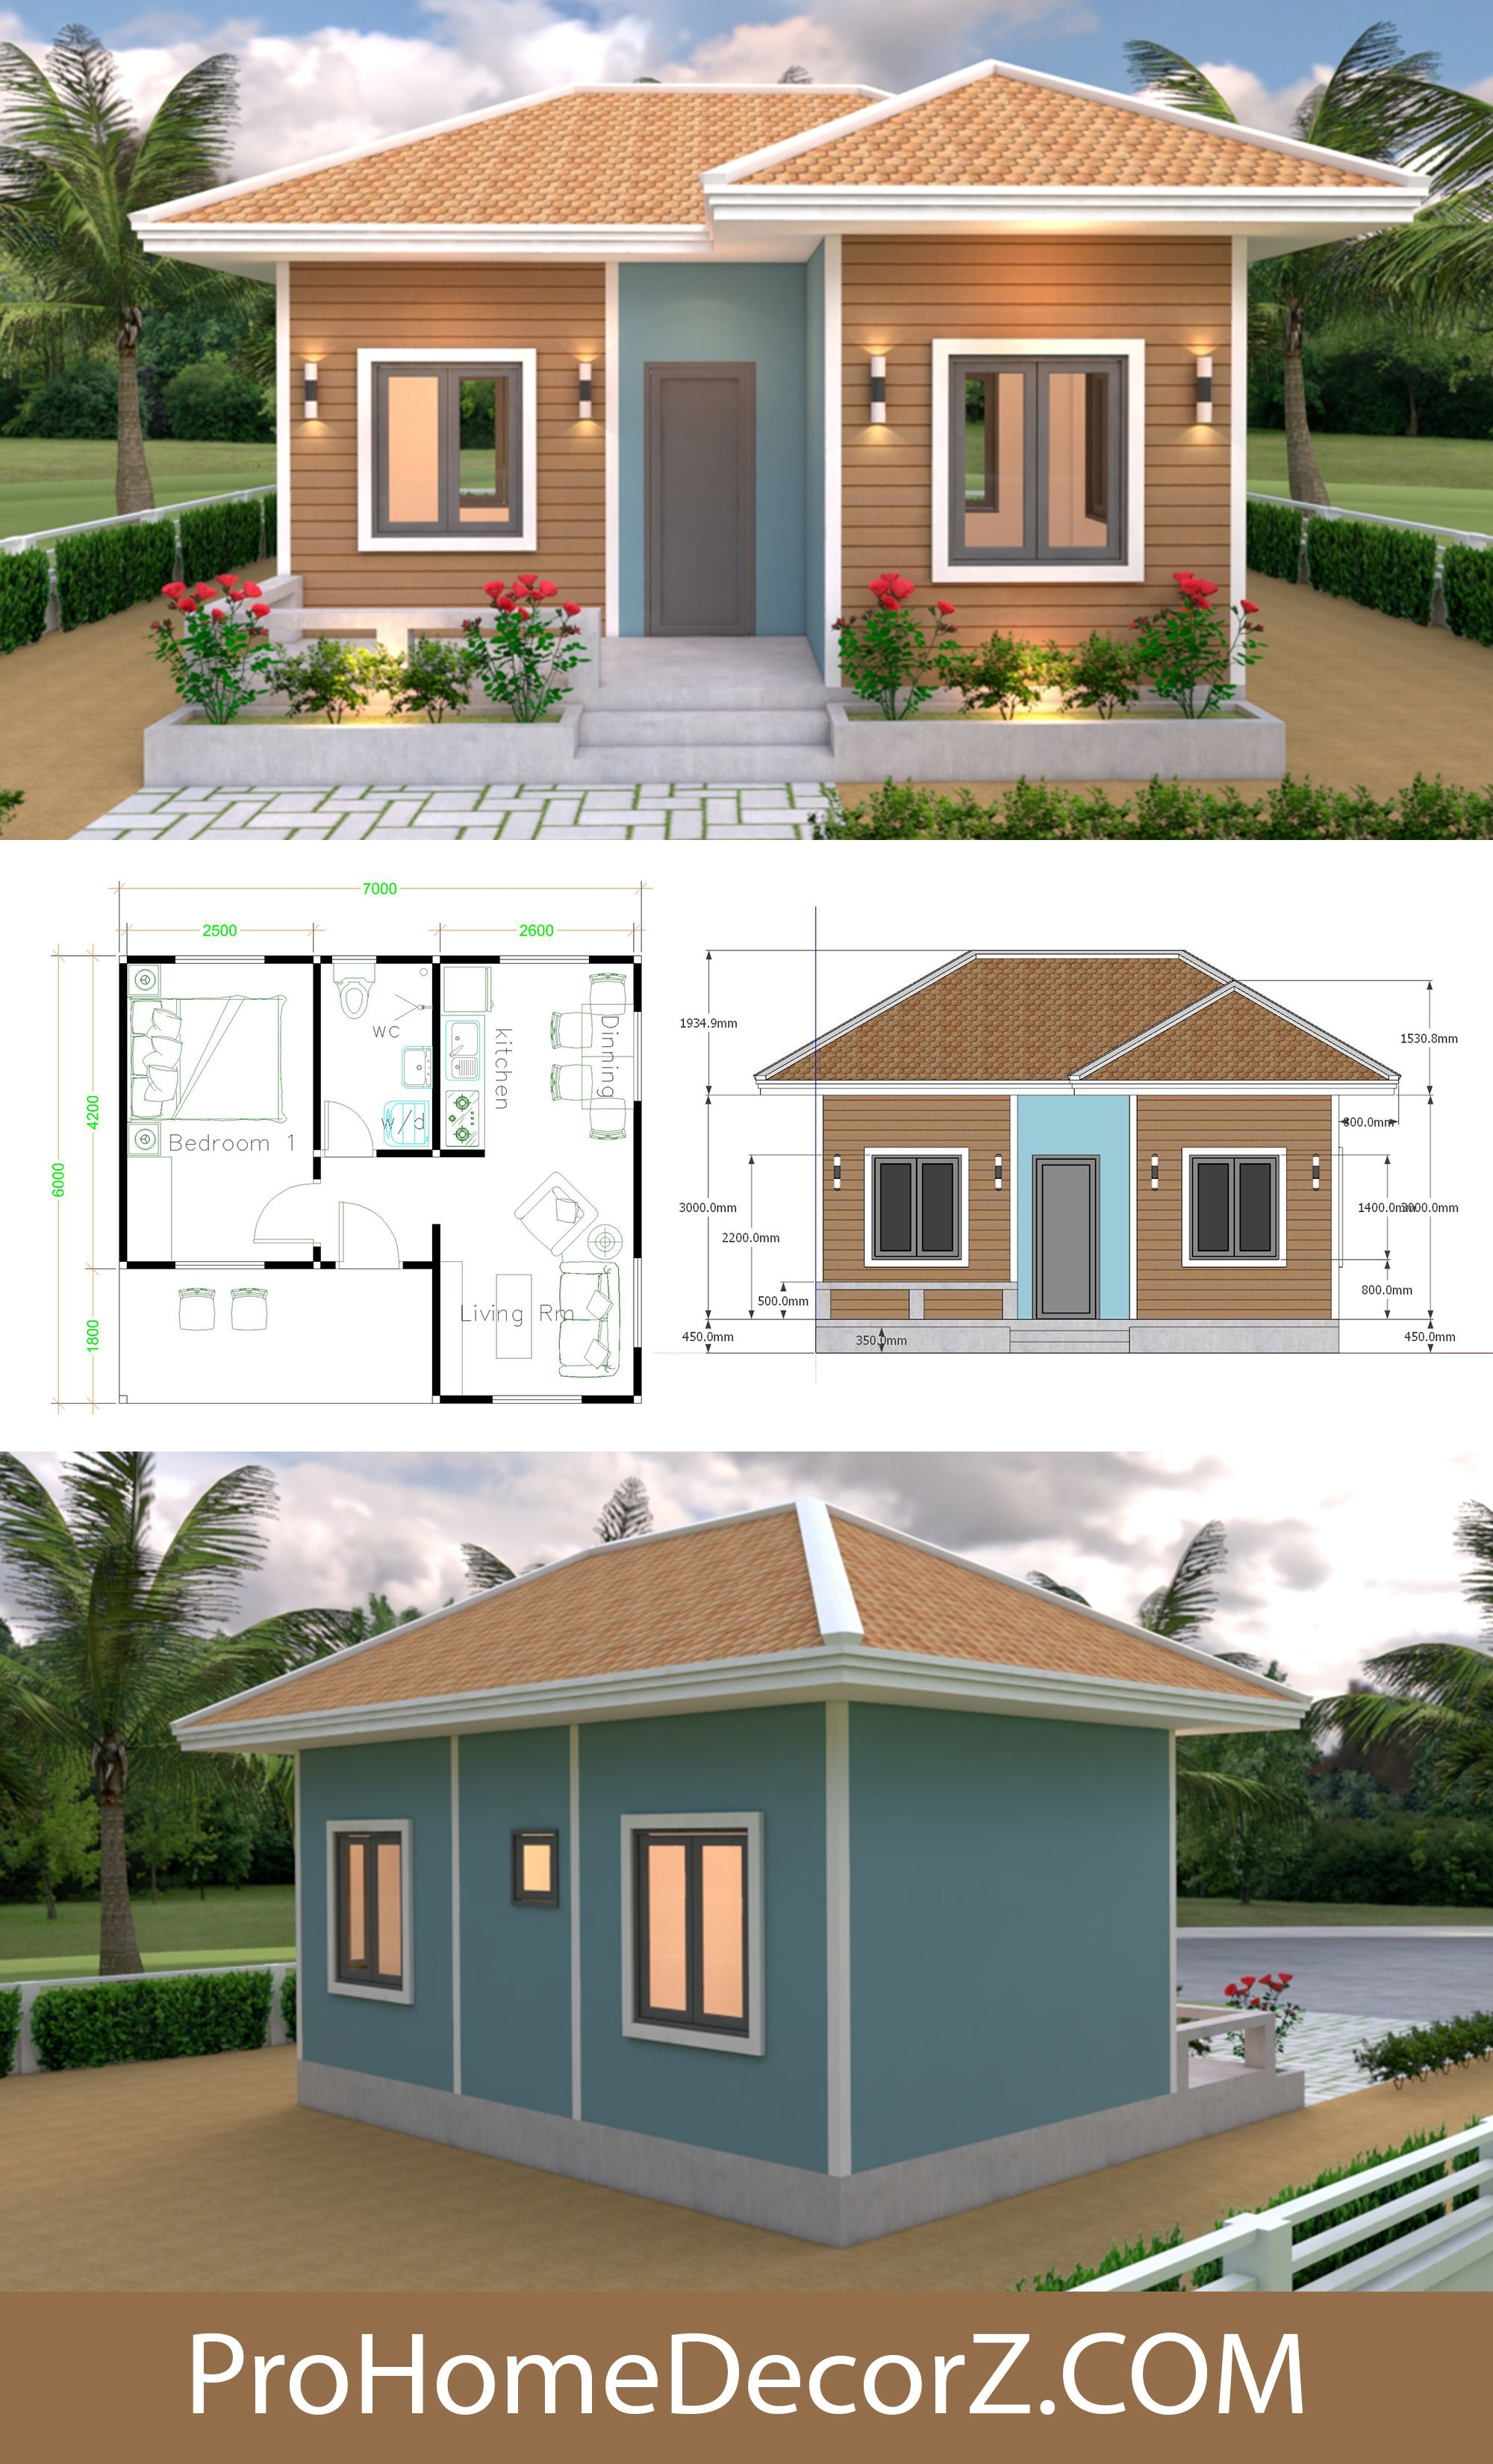 Simple House Designs 7x6 Hip Roof Simple House Design Simple House House Design